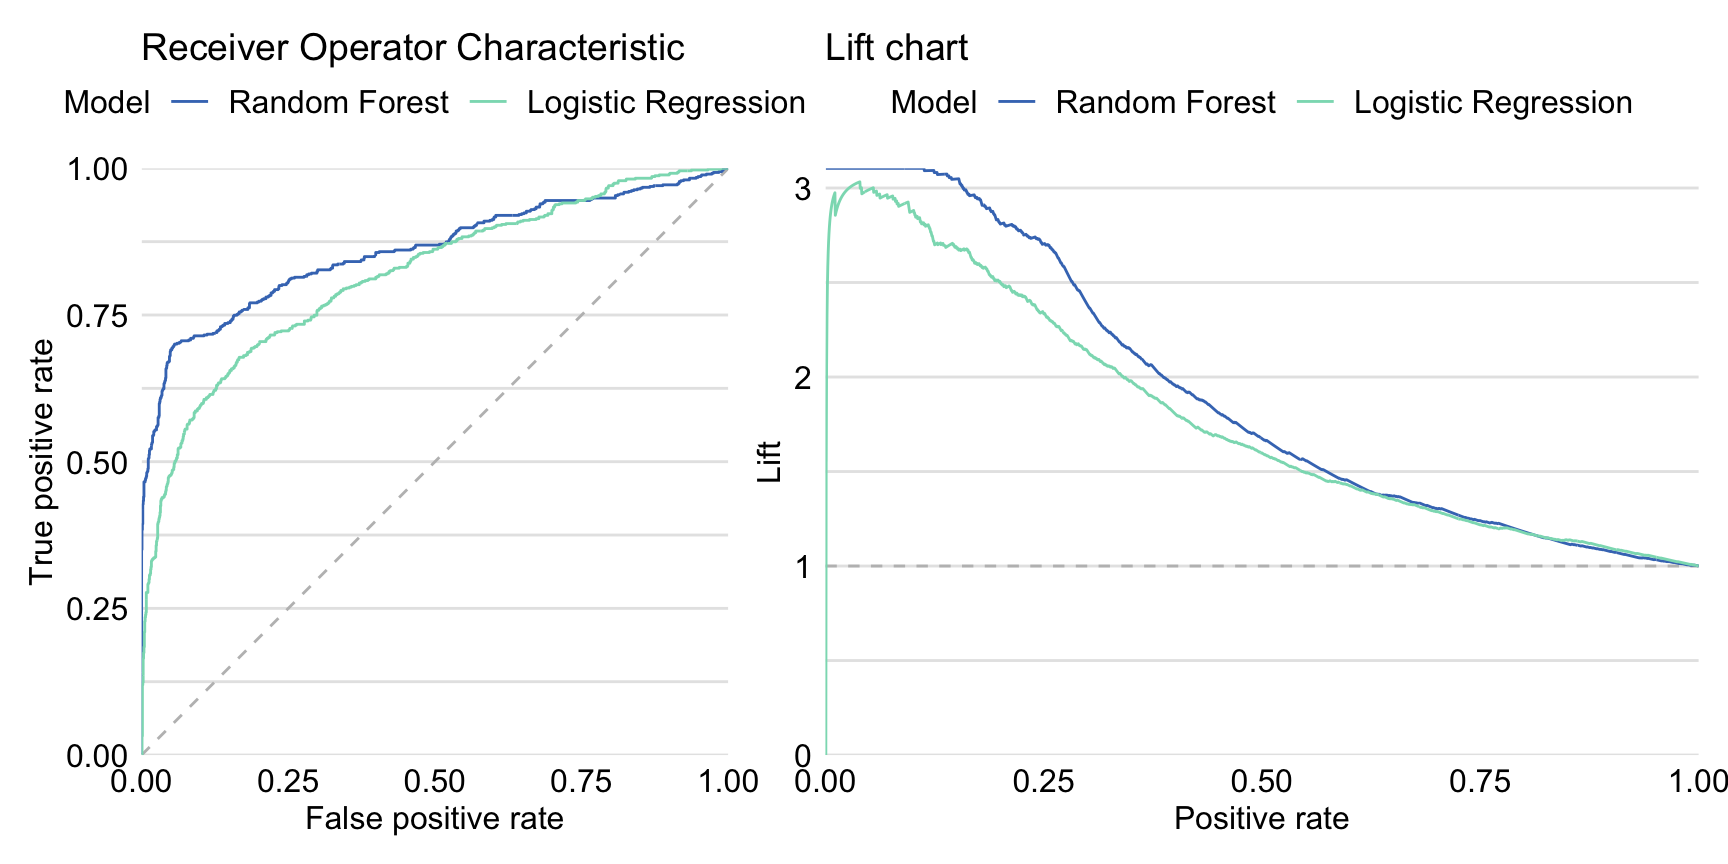 Receiver Operating Characteristic curves (left panel) and lift charts (right panel) for the random forest and logistic regression models for the Titanic dataset.